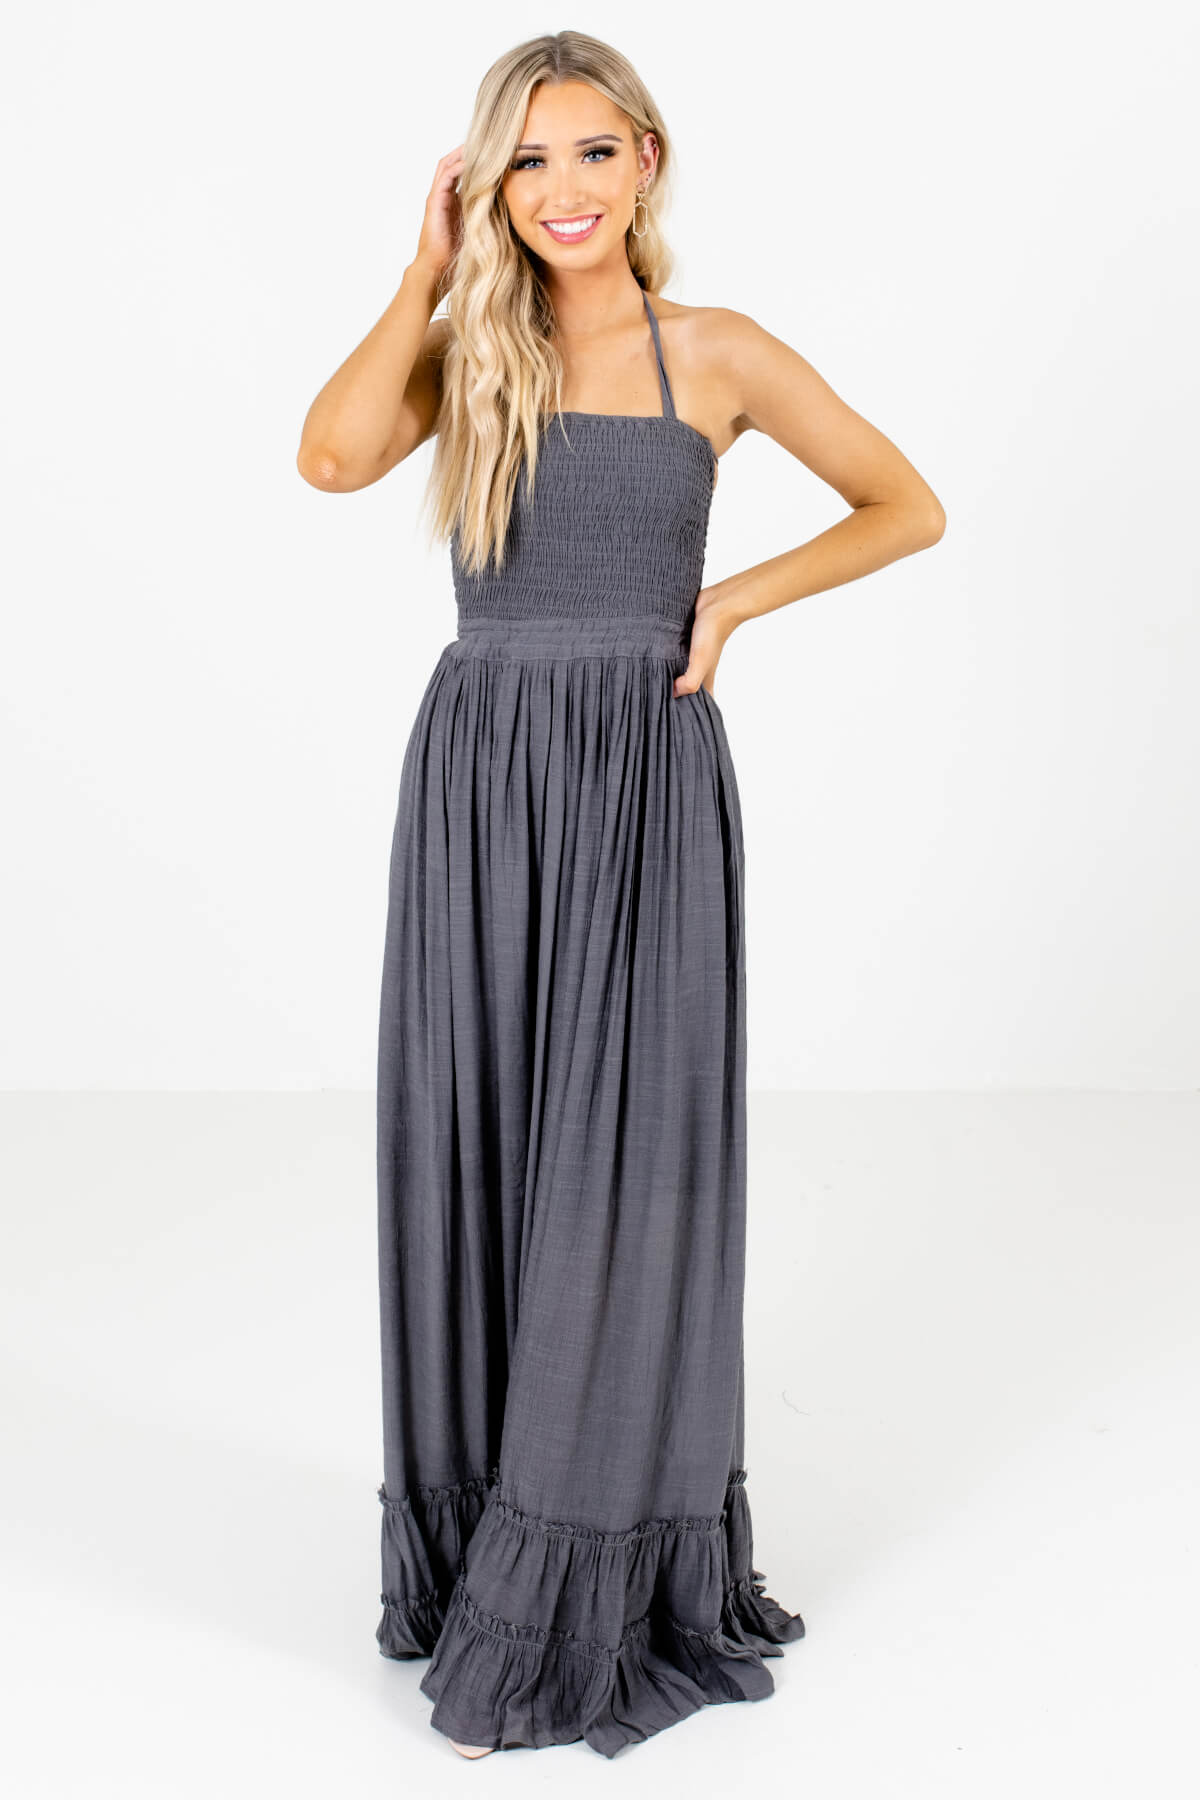 Charcoal Gray Smocked Bodice Boutique Maxi Dresses for Women